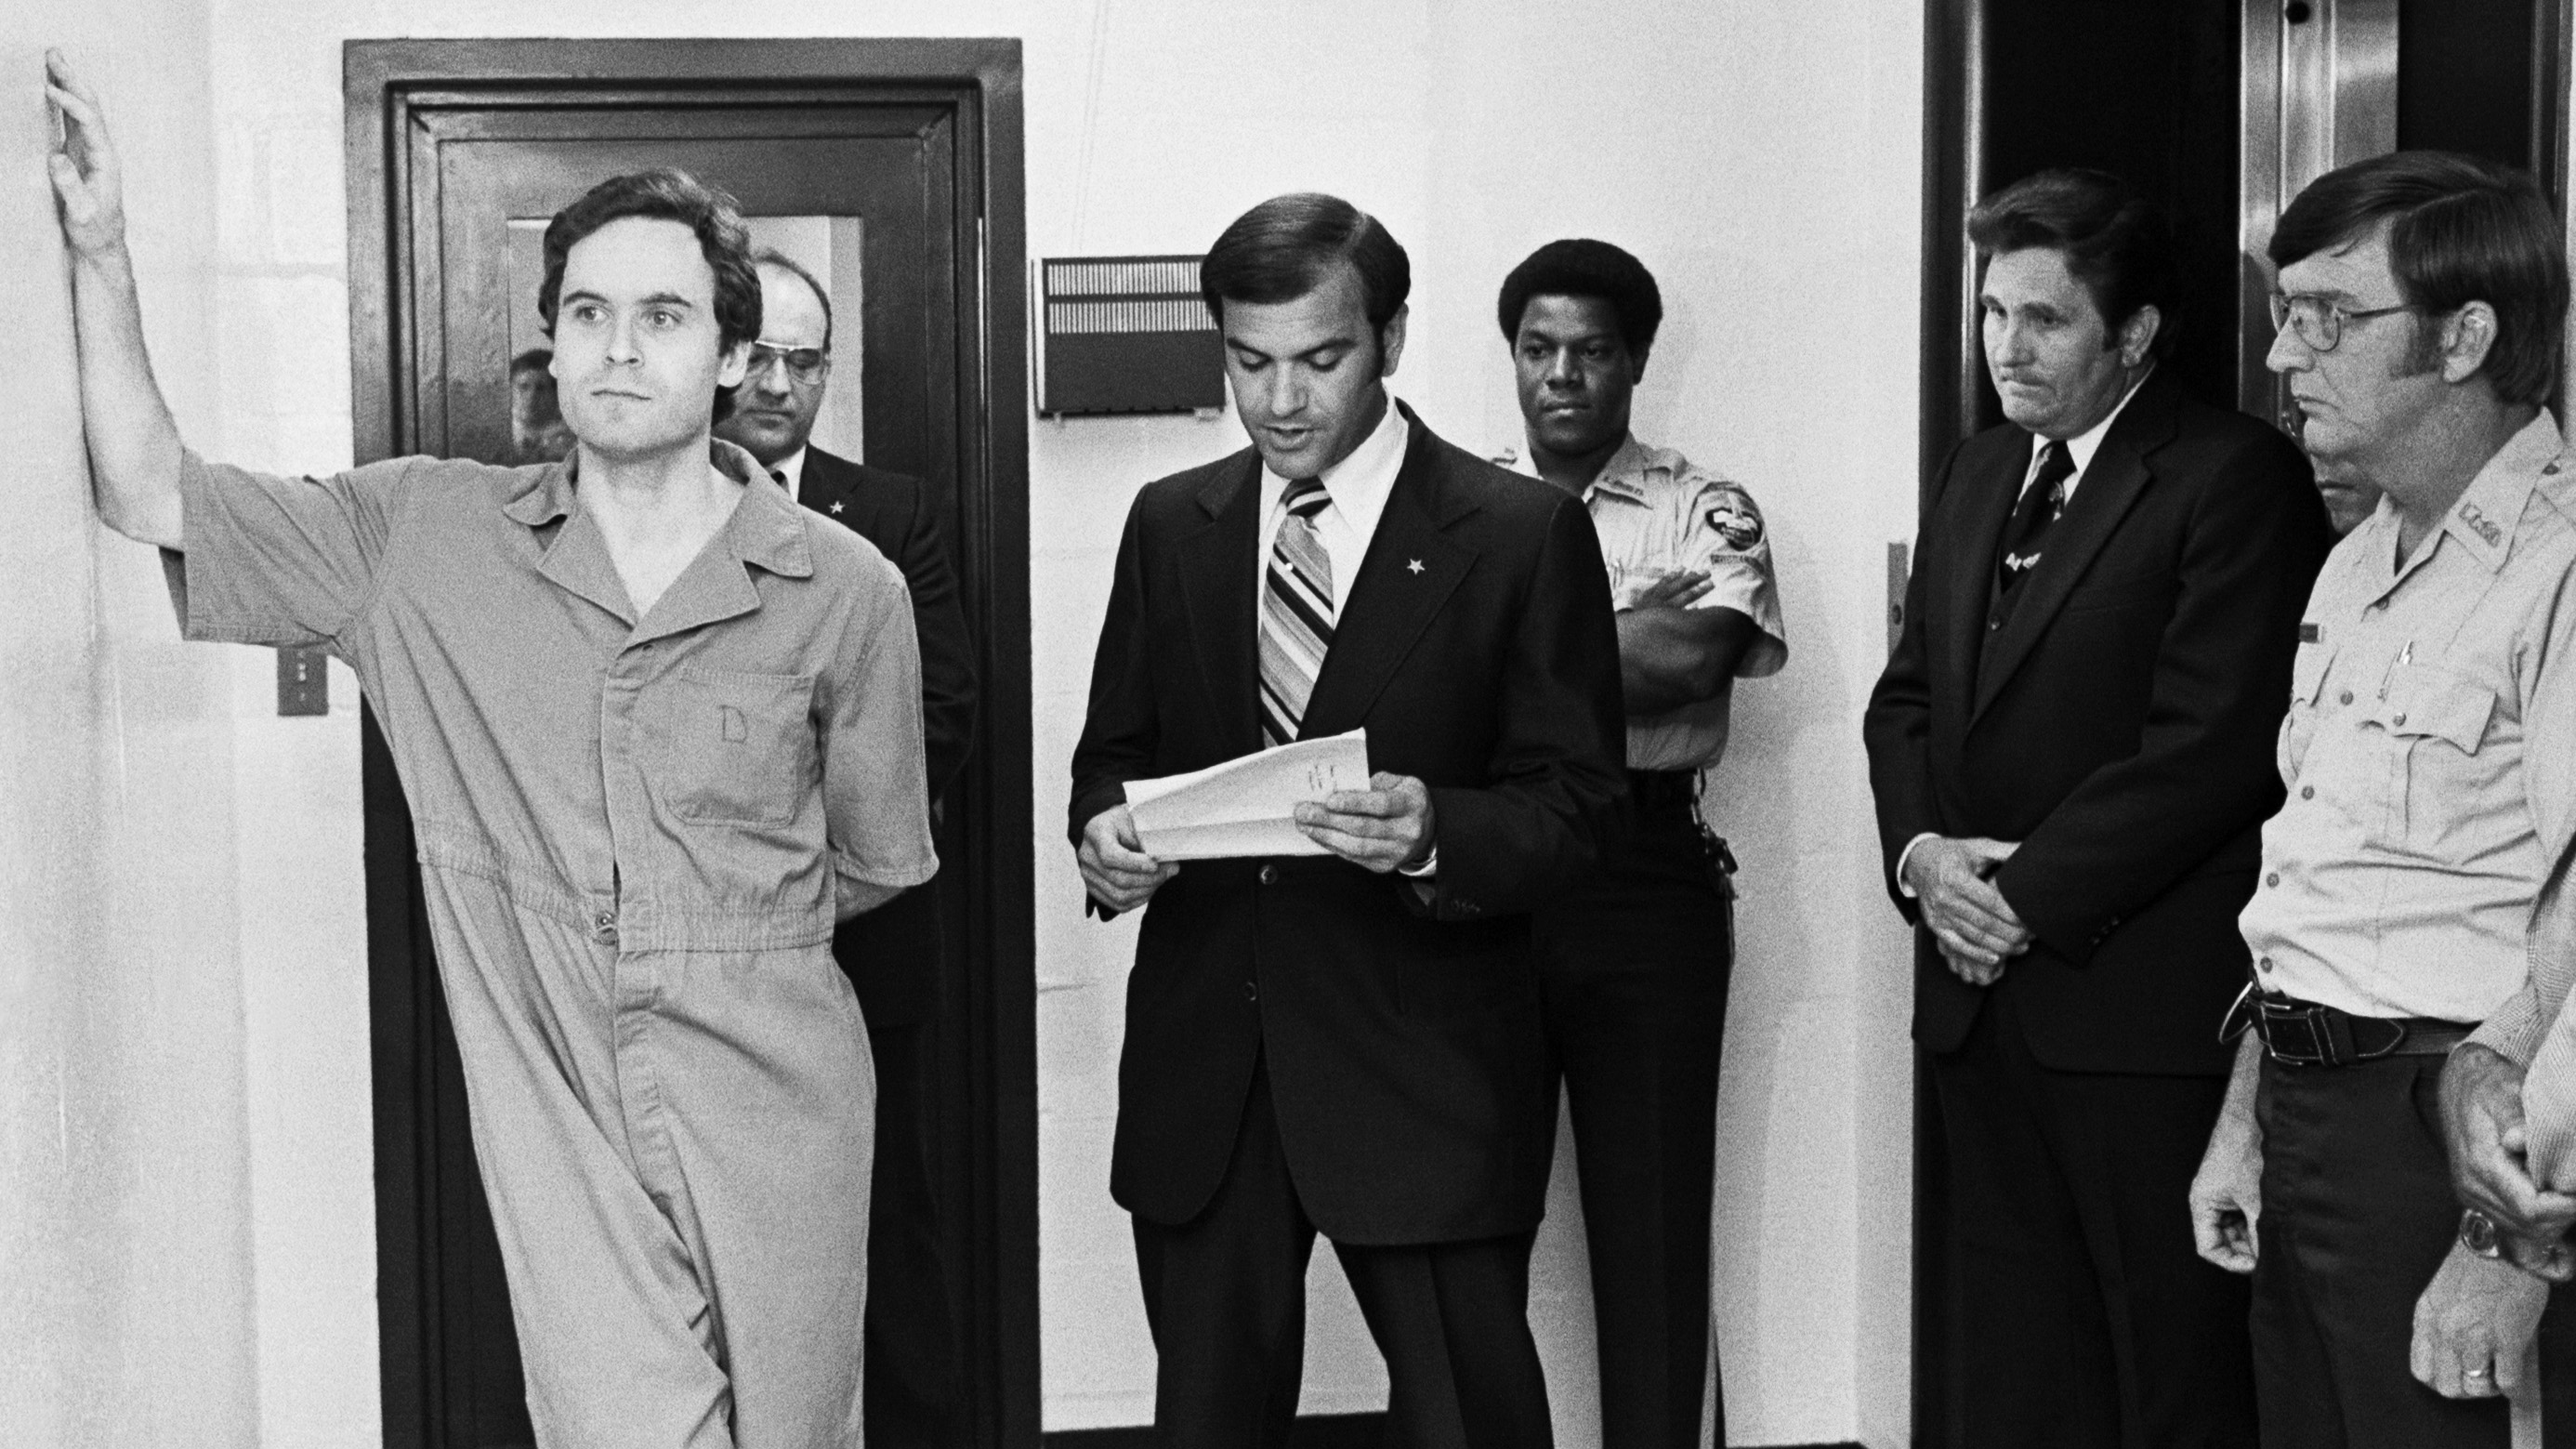 a review of the infamous ted bundys murder case Ted bundy essay examples 33 total results the harbinger of death: the case of ted bundy 2,073 words 5 pages  a review of the infamous ted bundy's murder case.